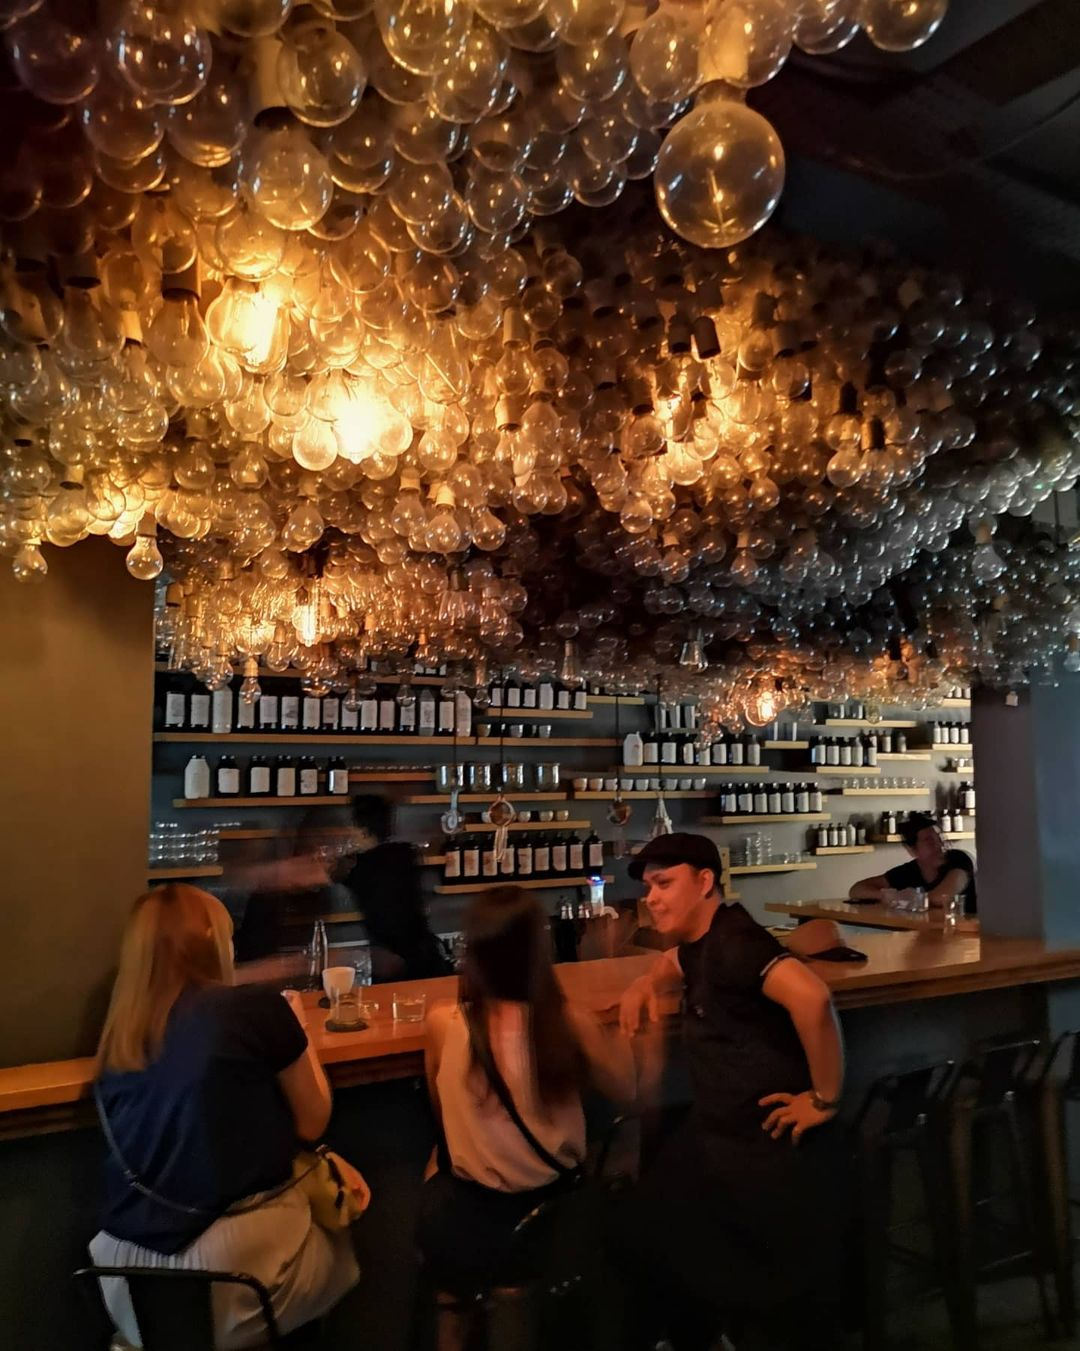 A shot of Operation Dagger's interior. In the foreground, three people can be seen sitting in front of the wooden bar, with another person sitting on the far right end. The bartender is busy making a drink behind the bar, facing a gray wall that's covered with several wooden shelves full of neatly-arranged bottles. The scene is illuminated by several lightbulbs hanging down the ceiling, which cannot be seen due to the sheer number of bulbs covering it.